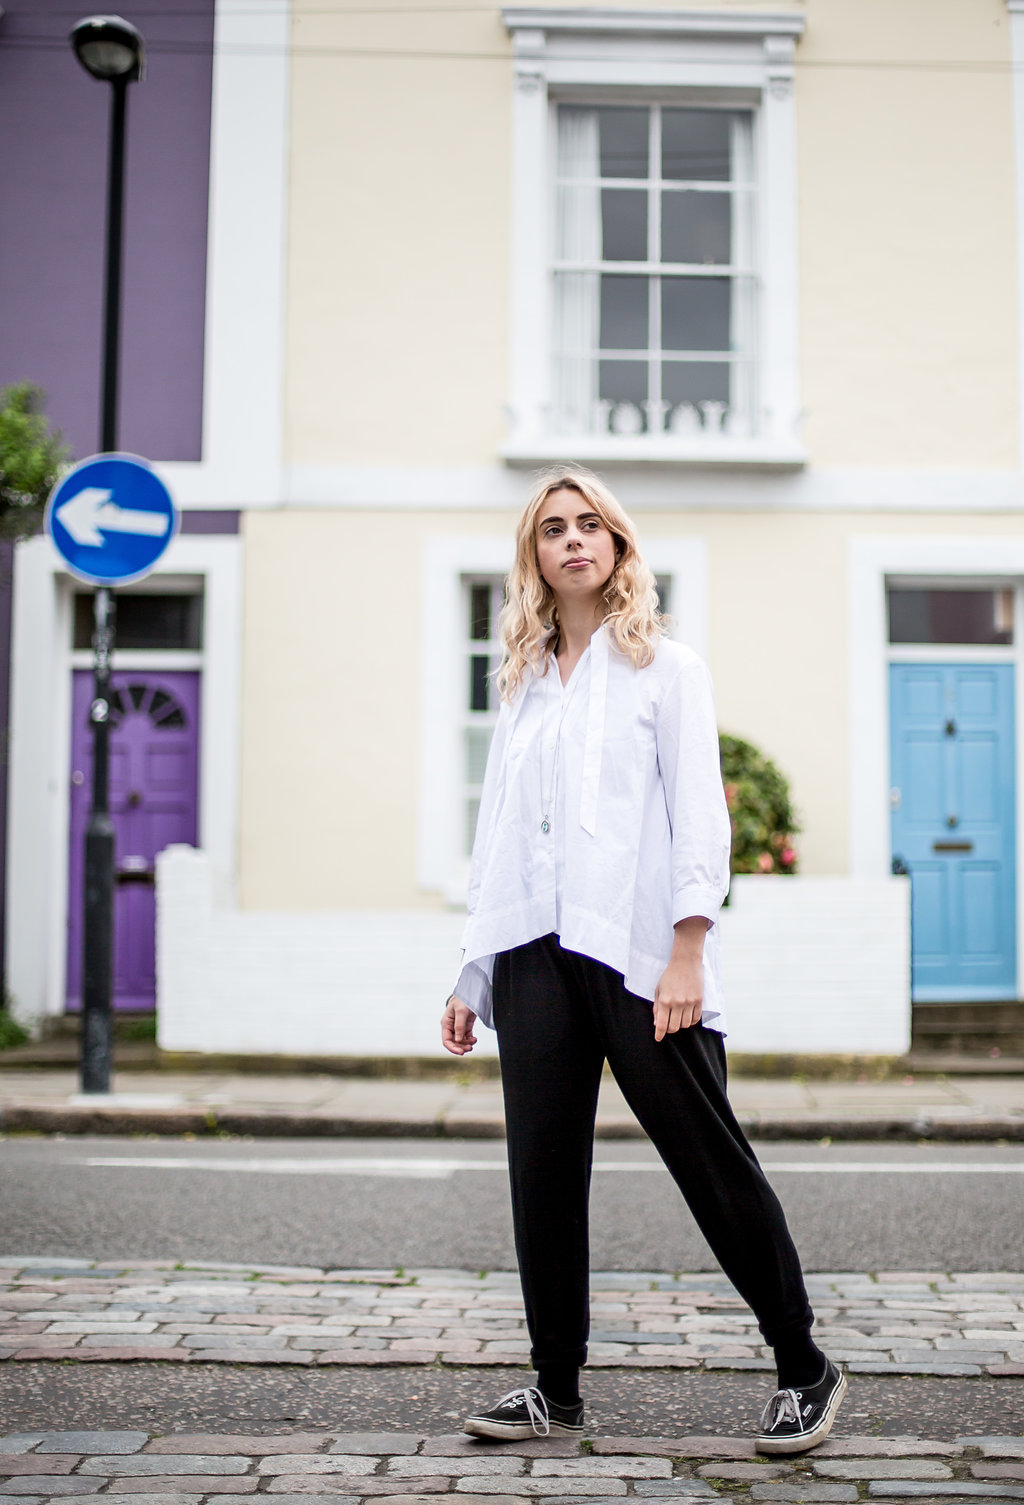 Crisp white blouse with joggers for a casual look // A Week Of Vibrant & Global Outfits With Francesca Willow From Ethical Unicorn on The Good Trade